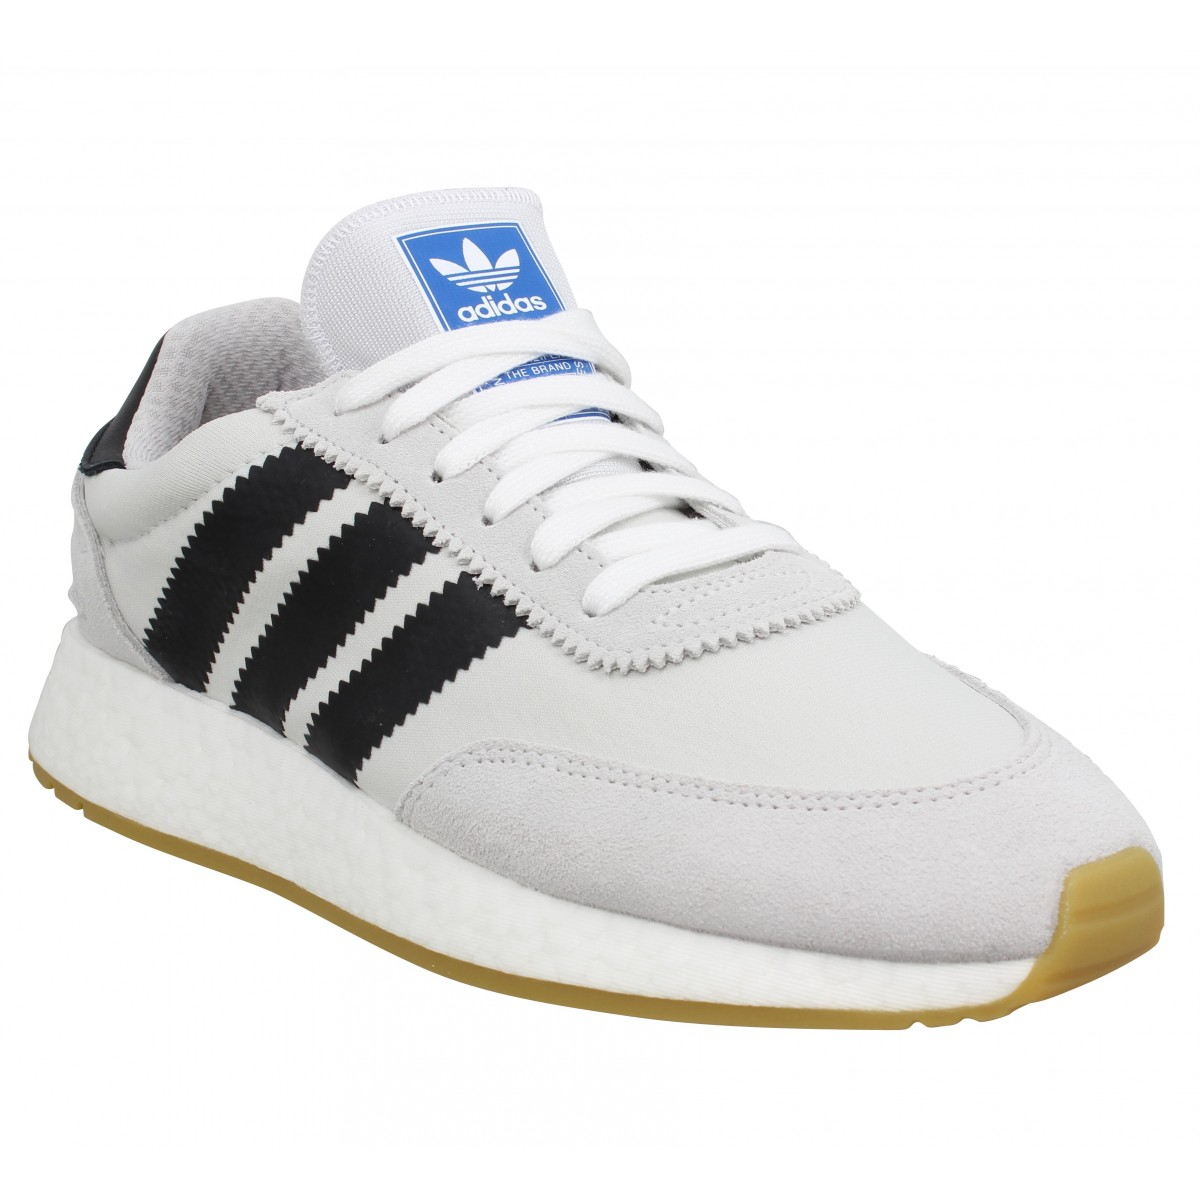 Baskets ADIDAS I-5923 toile Homme Gris